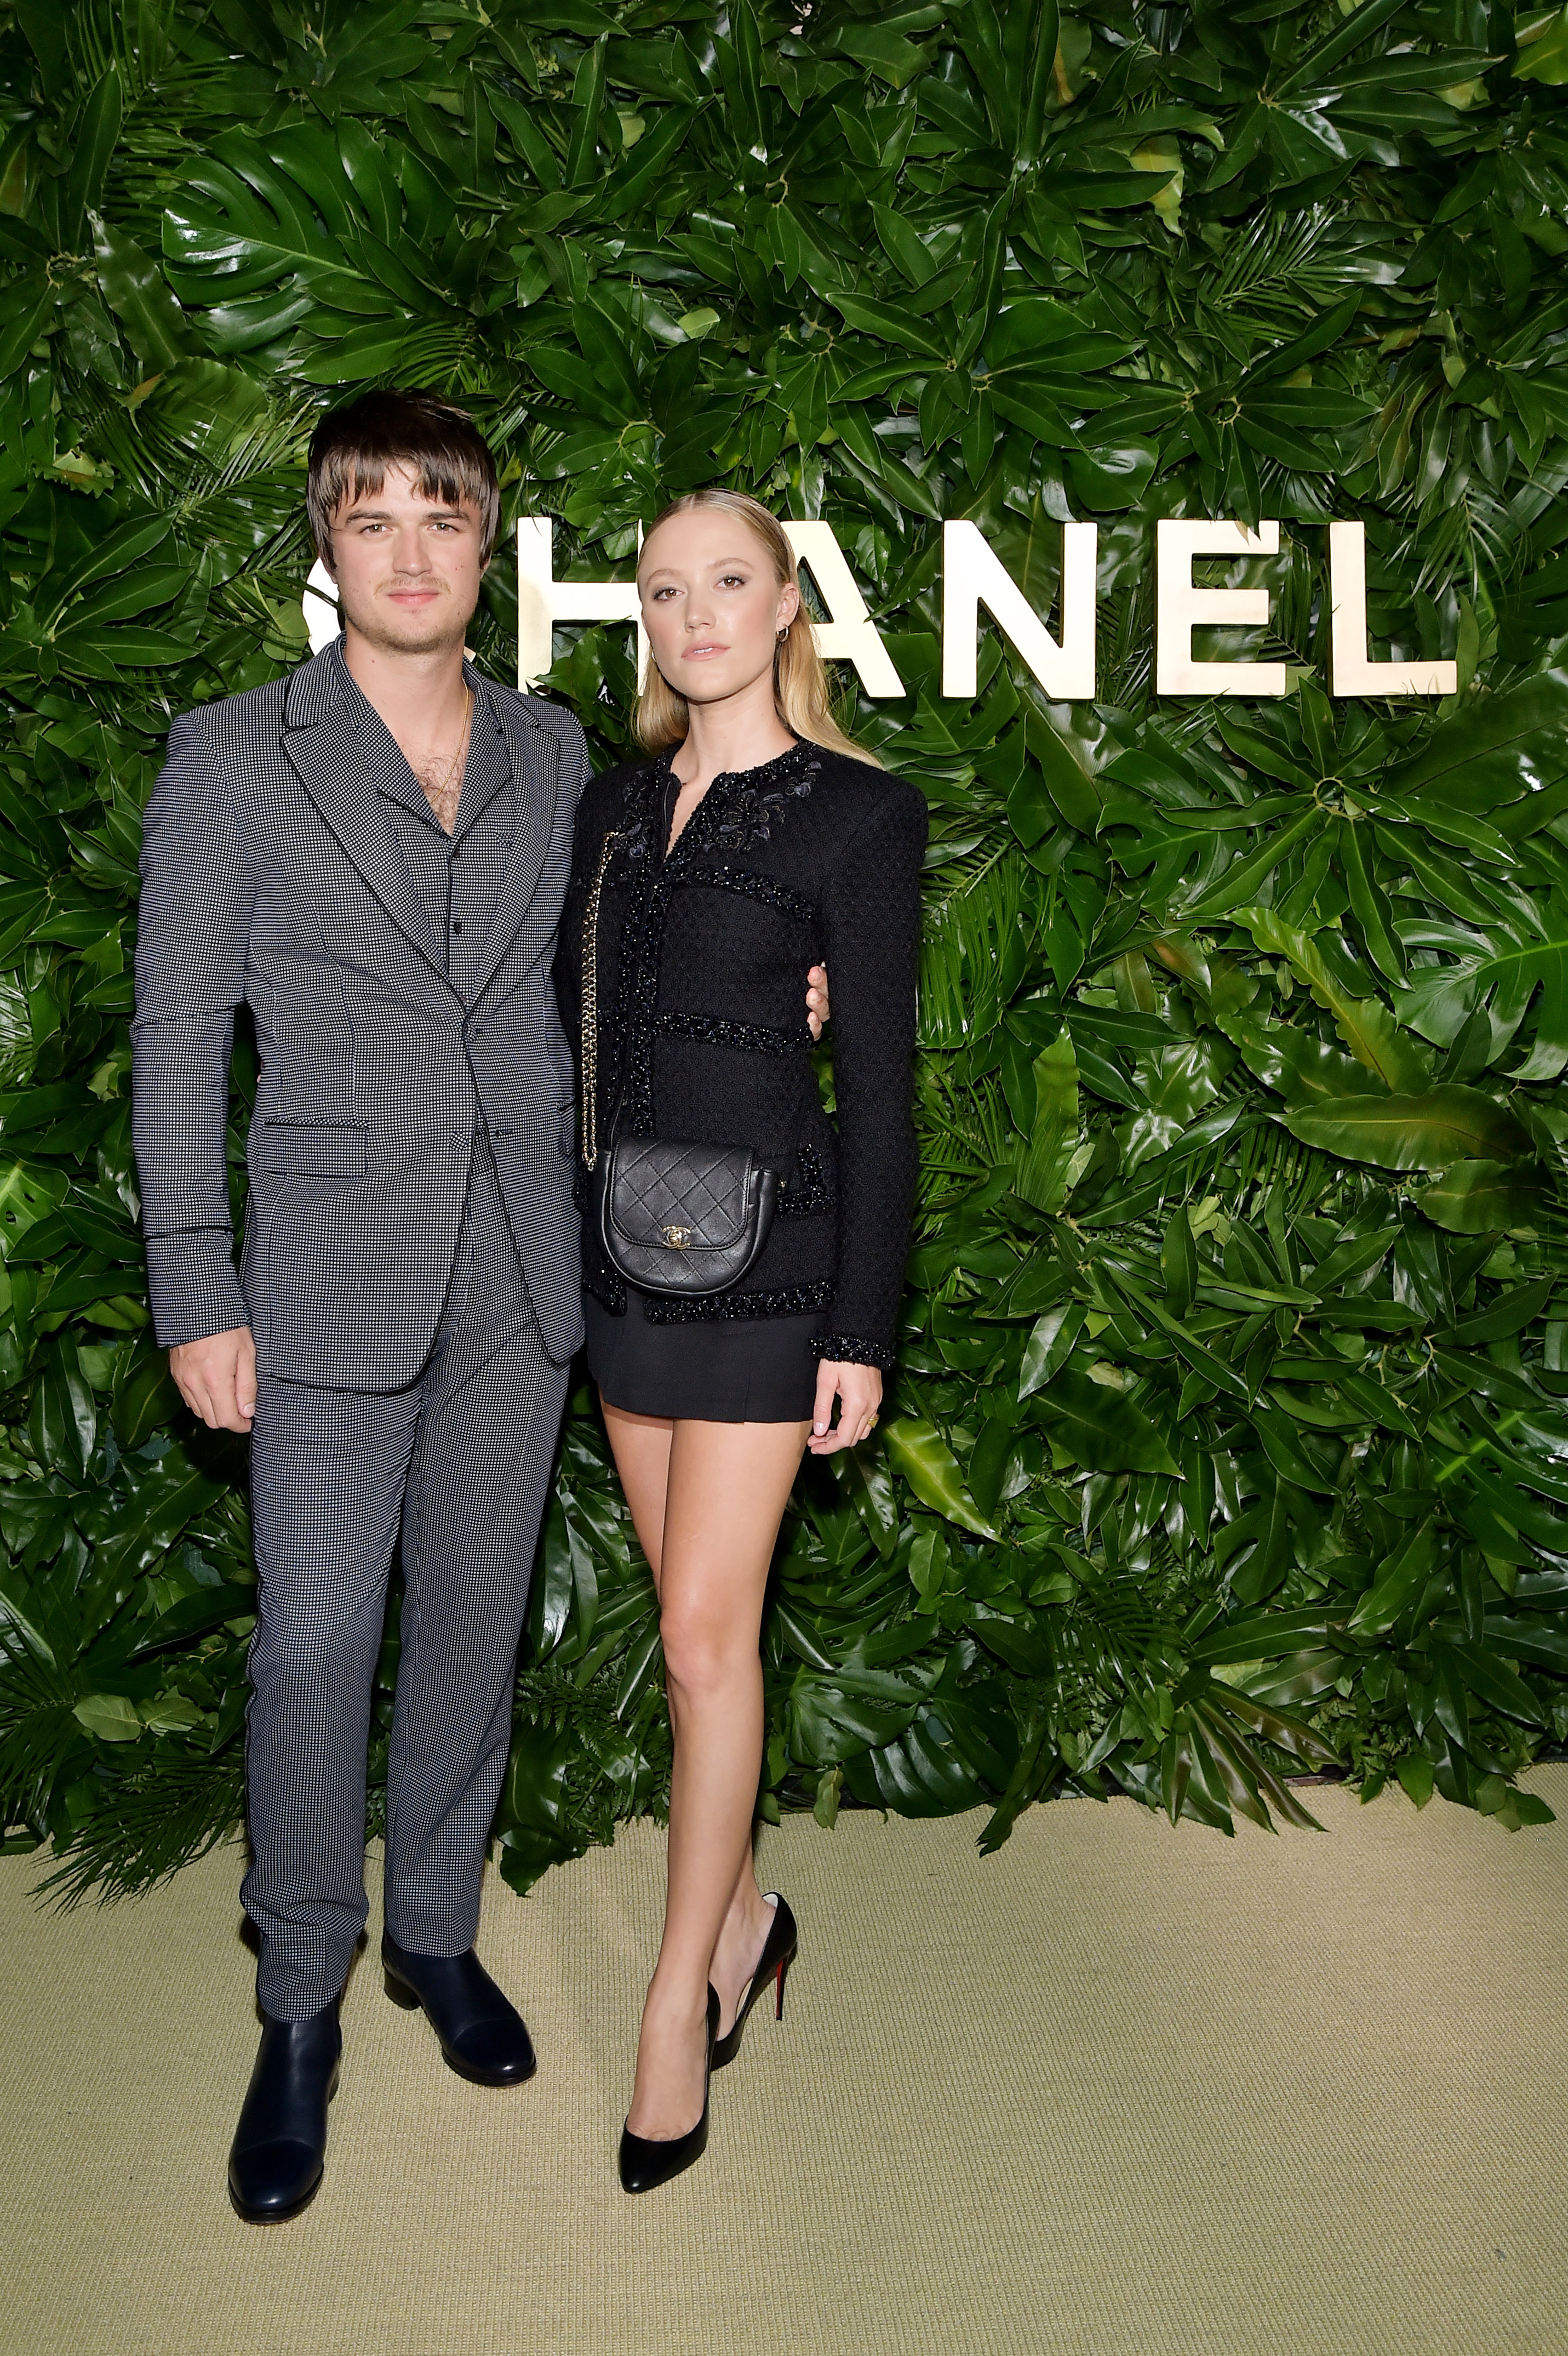 Joe Keery and Maika Monroe attend a Chanel event on September 12, 2019 in Los Angeles, California.